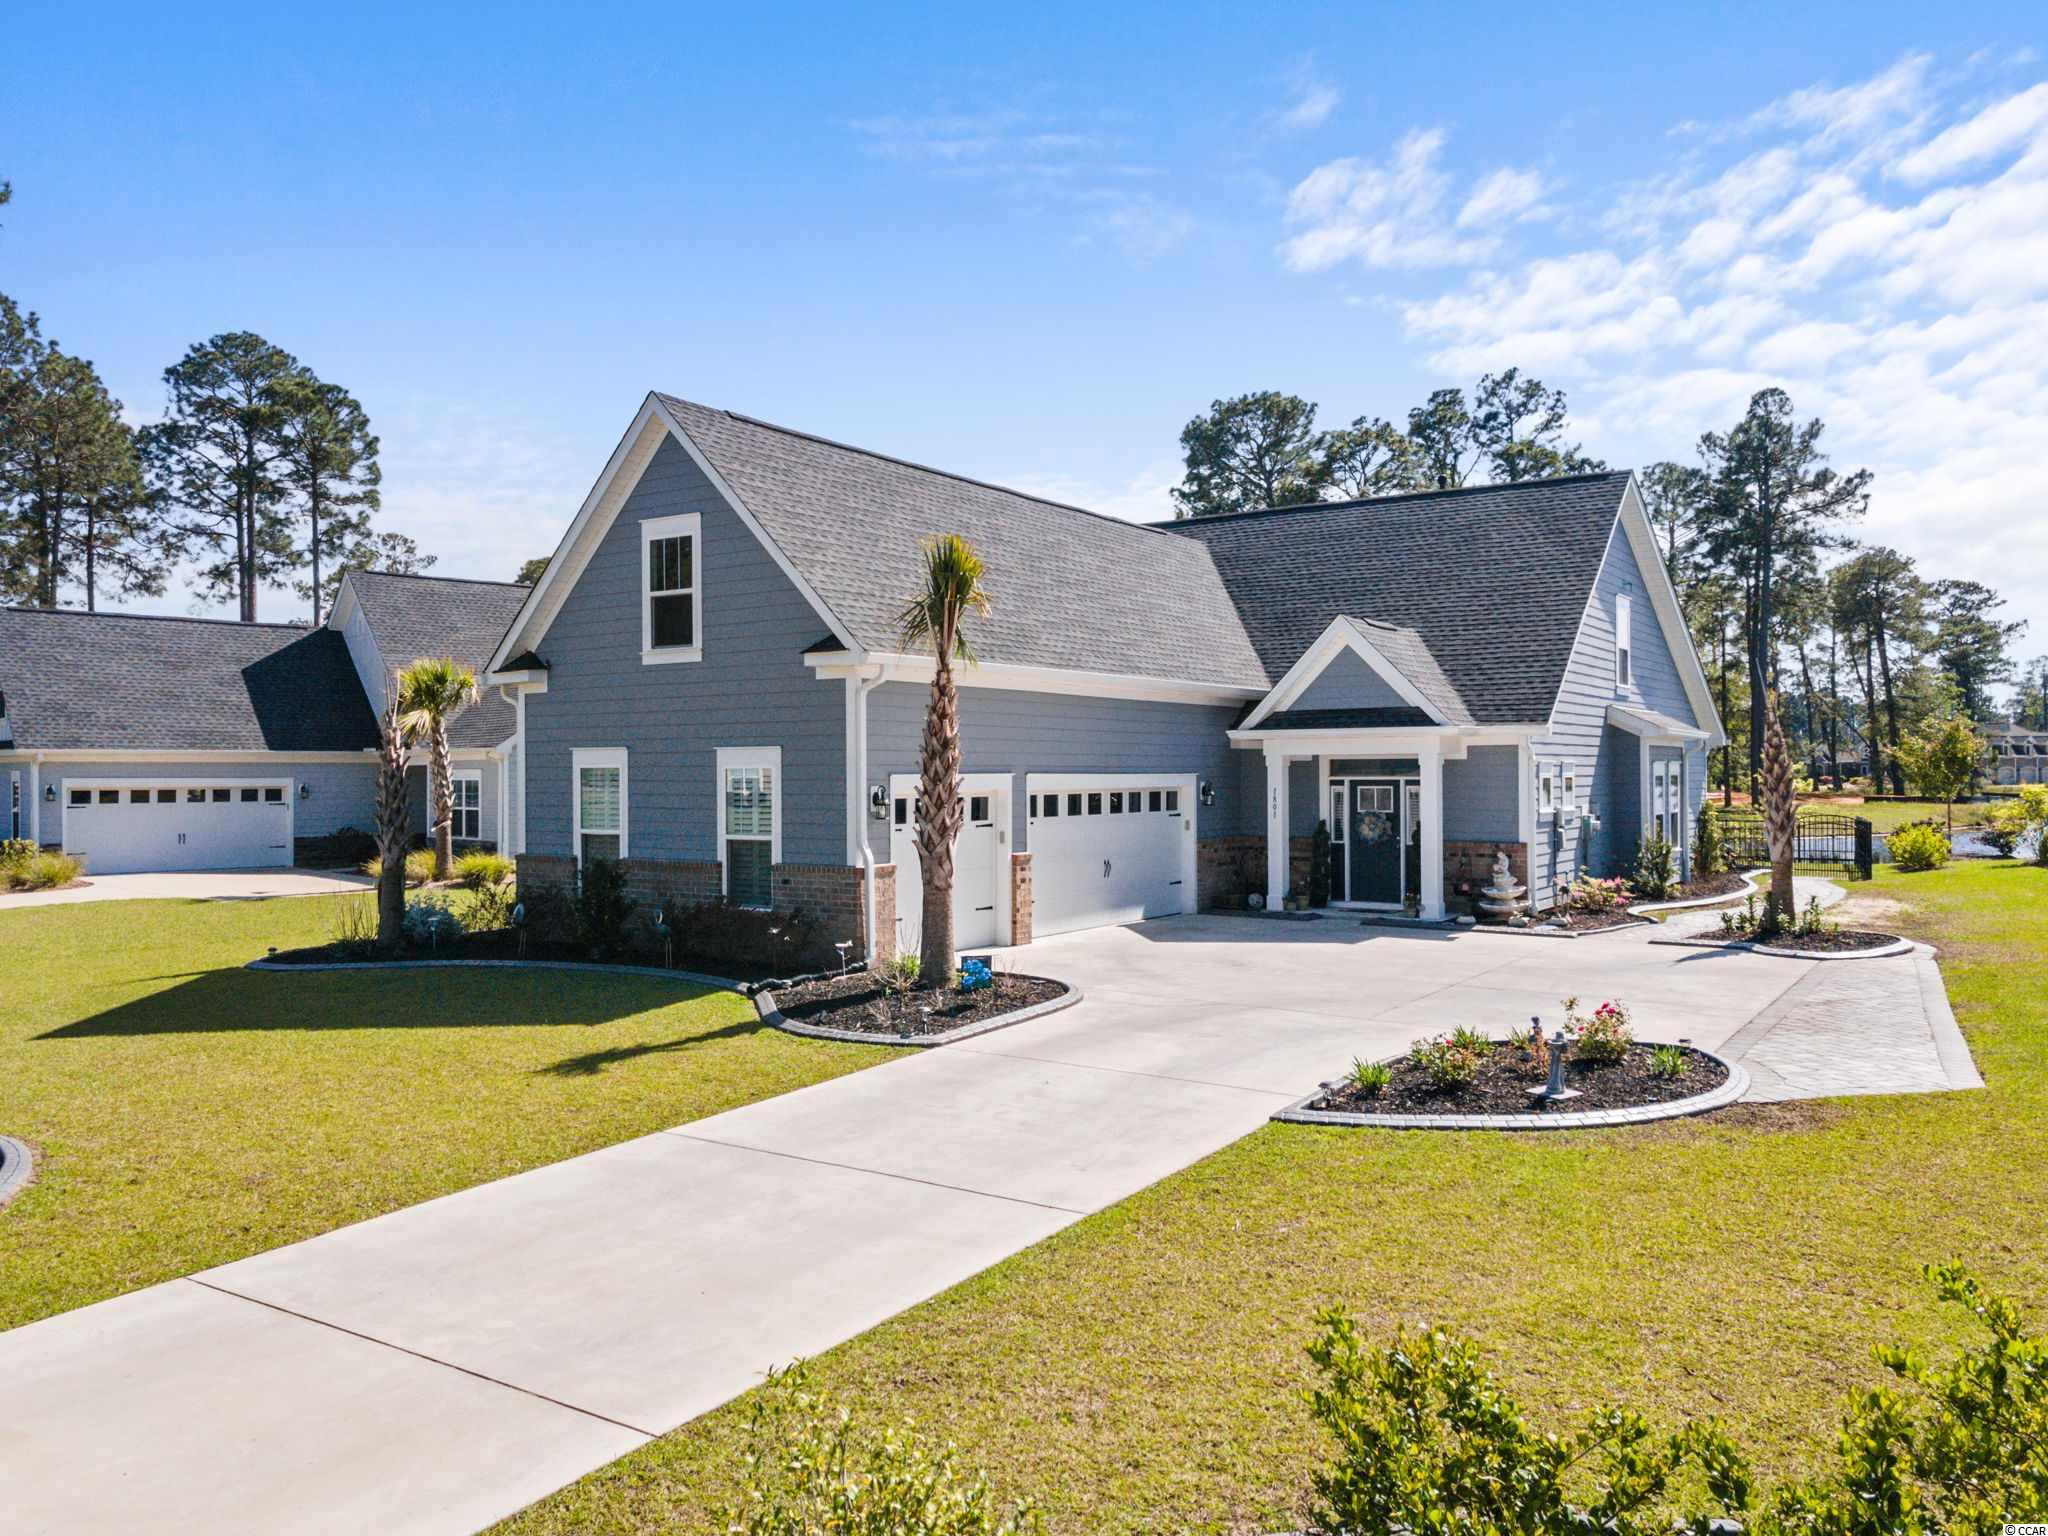 "Open House Saturday, April 24th from 11AM to 2PM  Don't miss this rare opportunity to own this better than new 5 bedroom, 2.5 bah home with an oversized 3 car garage on the large 180 acre lake in the highly sought-after luxury lake front community of Wild Wing Plantation.   This beautiful home is not your standard builder grade home, this is the extremely popular Aberdeen D Model and is loaded with extras and additional features that the homeowner has added. The stately front porch welcomes you into this breathtaking home. This home features a stainless-steel Chef's kitchen Natural gas package, upgraded cabinets in kitchen and laundry room, granite countertops with oversize island, luxury vinyl plank flooring throughout the main living areas, bonus room and in all the wet areas, upgraded carpet in the upstairs guest bedrooms and access to additional storage under the eaves of the home.   The homeowner has recently added and upgraded the home by the additional of the following; finished large bonus room/bedroom over the 3-car garage that added an additional 492 heated square feet to this already large spacious home, Contractor has been scheduled to modify the study to create an additional downstairs bedroom, custom made plantation shutters, added a custom ""doggie door"", rod iron fencing, ""curbscaping "" of the all beds that accent the professionally landscaped backyard. The homeowner added a custom paved driveway extension to allow for additional parking and ease of entry and exit from the oversize 3 car-garage, added custom garage shelving and workshop that offers unlimited possibilities for the homeowner.   This fabulous home features breathtaking views down the large 180 acre lake and offers unparalleled enjoyment of the many SC lake birds, including blue heron, egrets and even eagles. Wild Wing Plantation has over 180 acres of lakes for you to explore and enjoy.   You can even add your own private boat dock, use your boat to explore the lakes, fish and even take your boat to the clubhouse to also enjoy the many amenities there. The community features custom built brick and stucco style luxury homes. This home has the latest state of the art smart home features and is an energy star green home.   Association amenities included large clubhouse, multiple outdoor pools, hot tub, 80' waterslide, tennis/pickle ball courts, basketball court, new fenced in playground area, huge day dock, private boat ramp and owners private boat storage. Be sure to have your Realtor ask about the Wild Wing Golf Club membership promotion that the developer is offering!!! Wild Wing Plantation offers convenient easy access to Coastal Carolina University, shopping, the beaches and all that Myrtle Beach and Conway has to offer. Don't miss out on this rare find, have your Realtor schedule a showing today!!!  All measurements and square footage are approximate and not guaranteed. Buyer is responsible for verification."